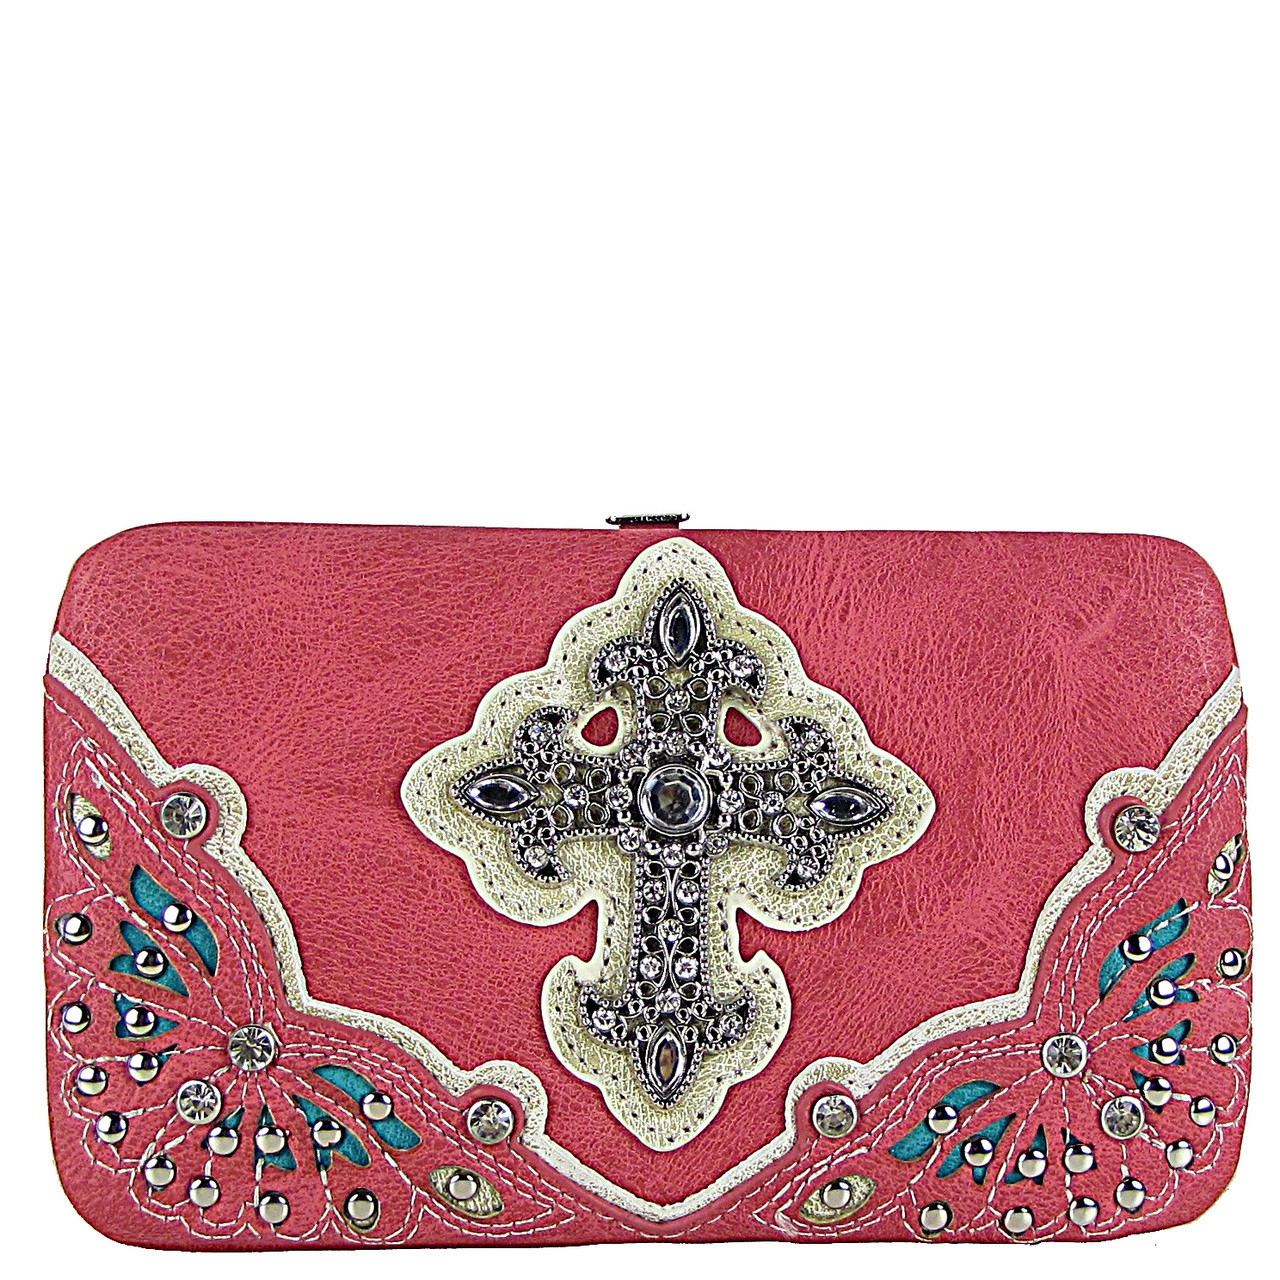 HOT PINK RHINESTONE CROSS WESTERN FLAT THICK WALLET FW2-04116HPK